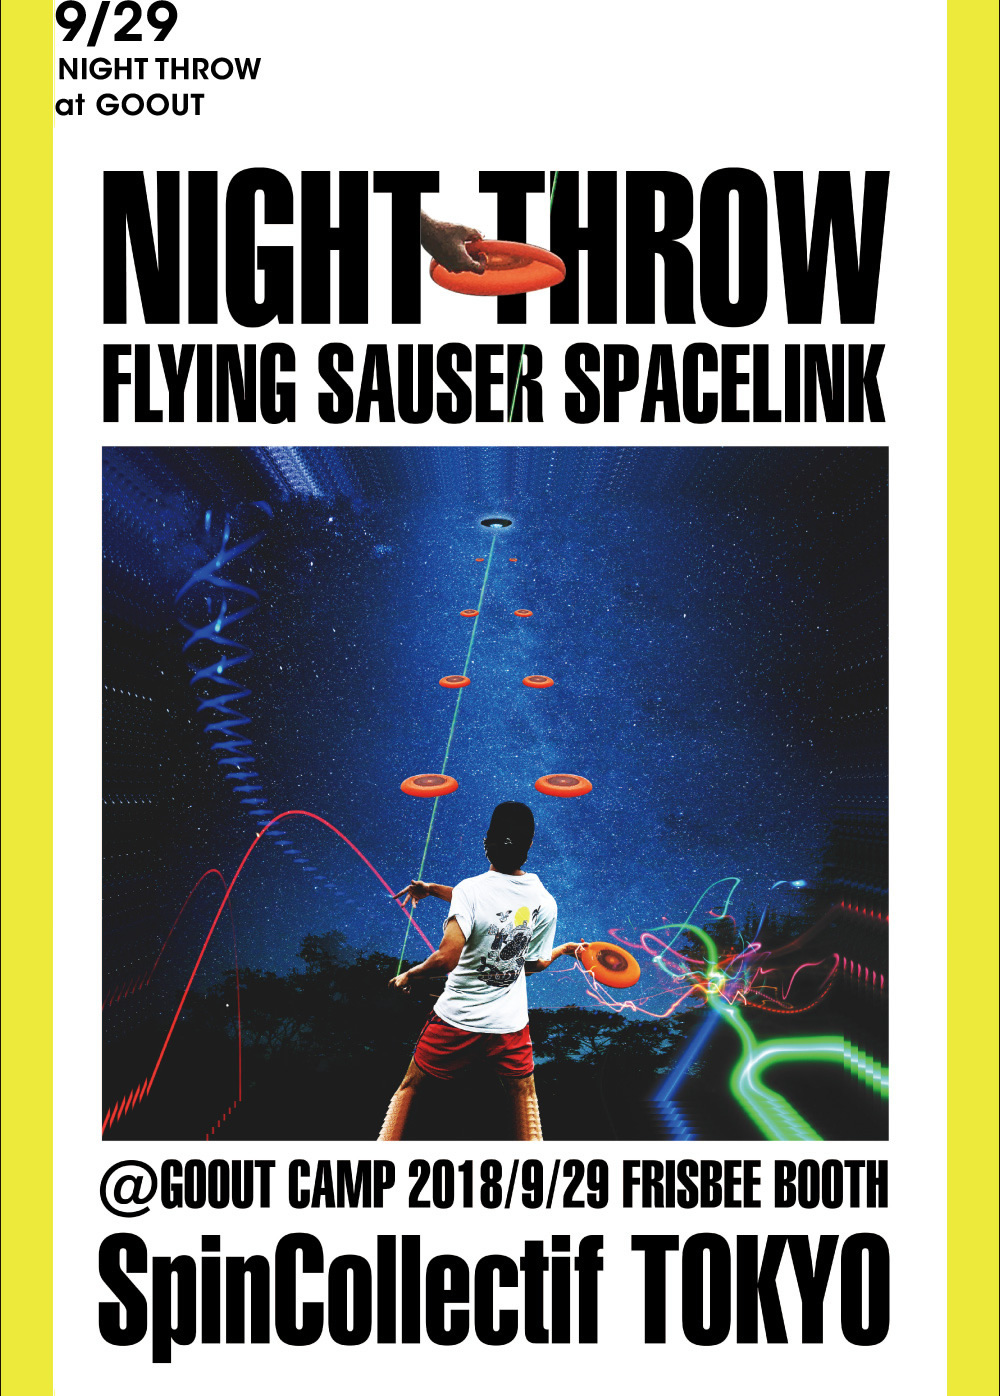 2018/9/29 NIGHT THROW at GOOUT